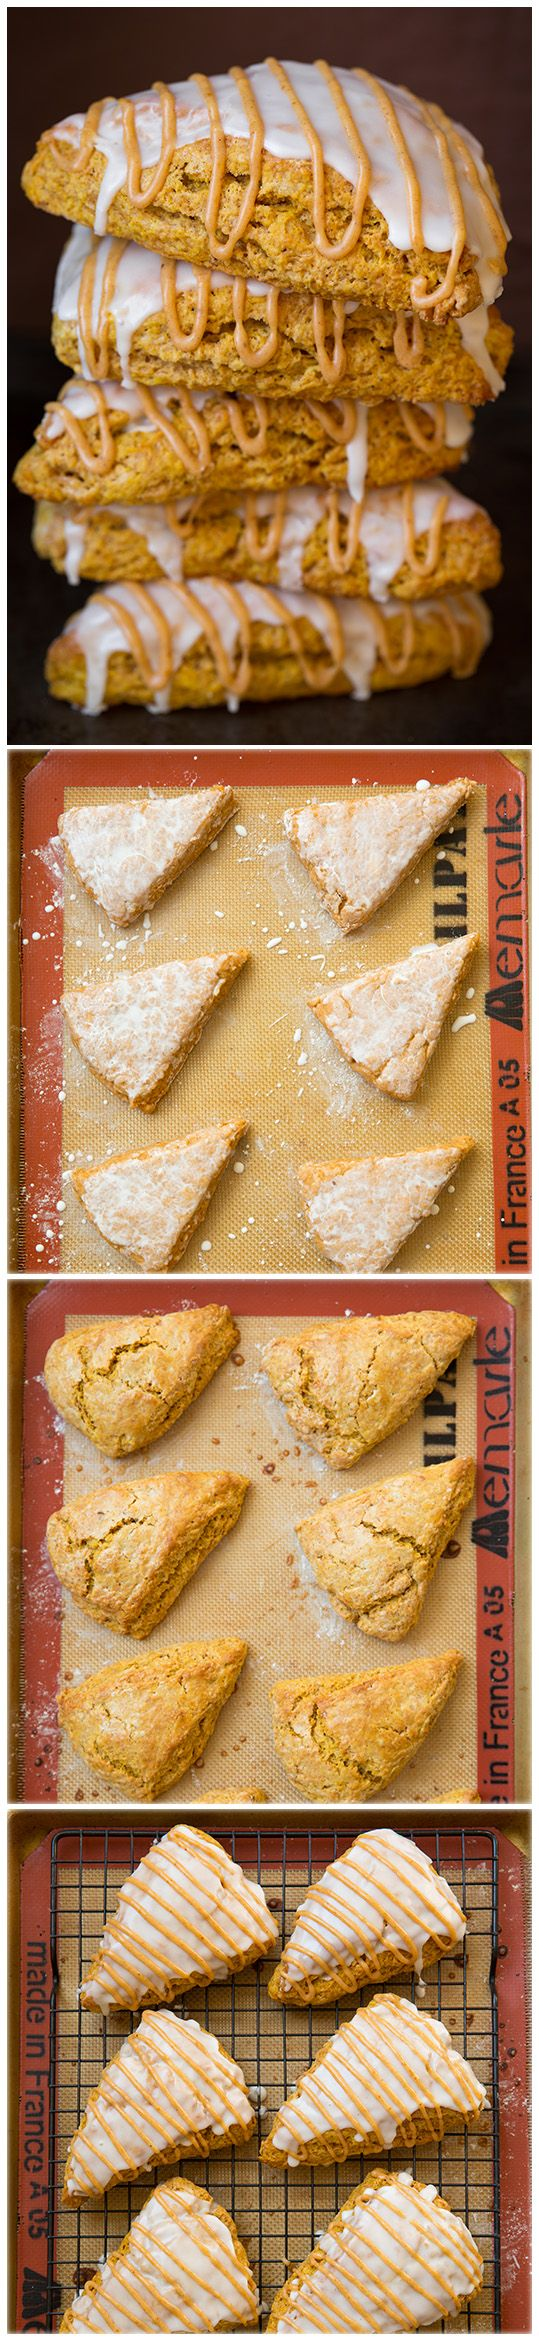 Copycat Starbucks Pumpkin Scones - these are one of the best scones I've ever had! Seriously loved these!